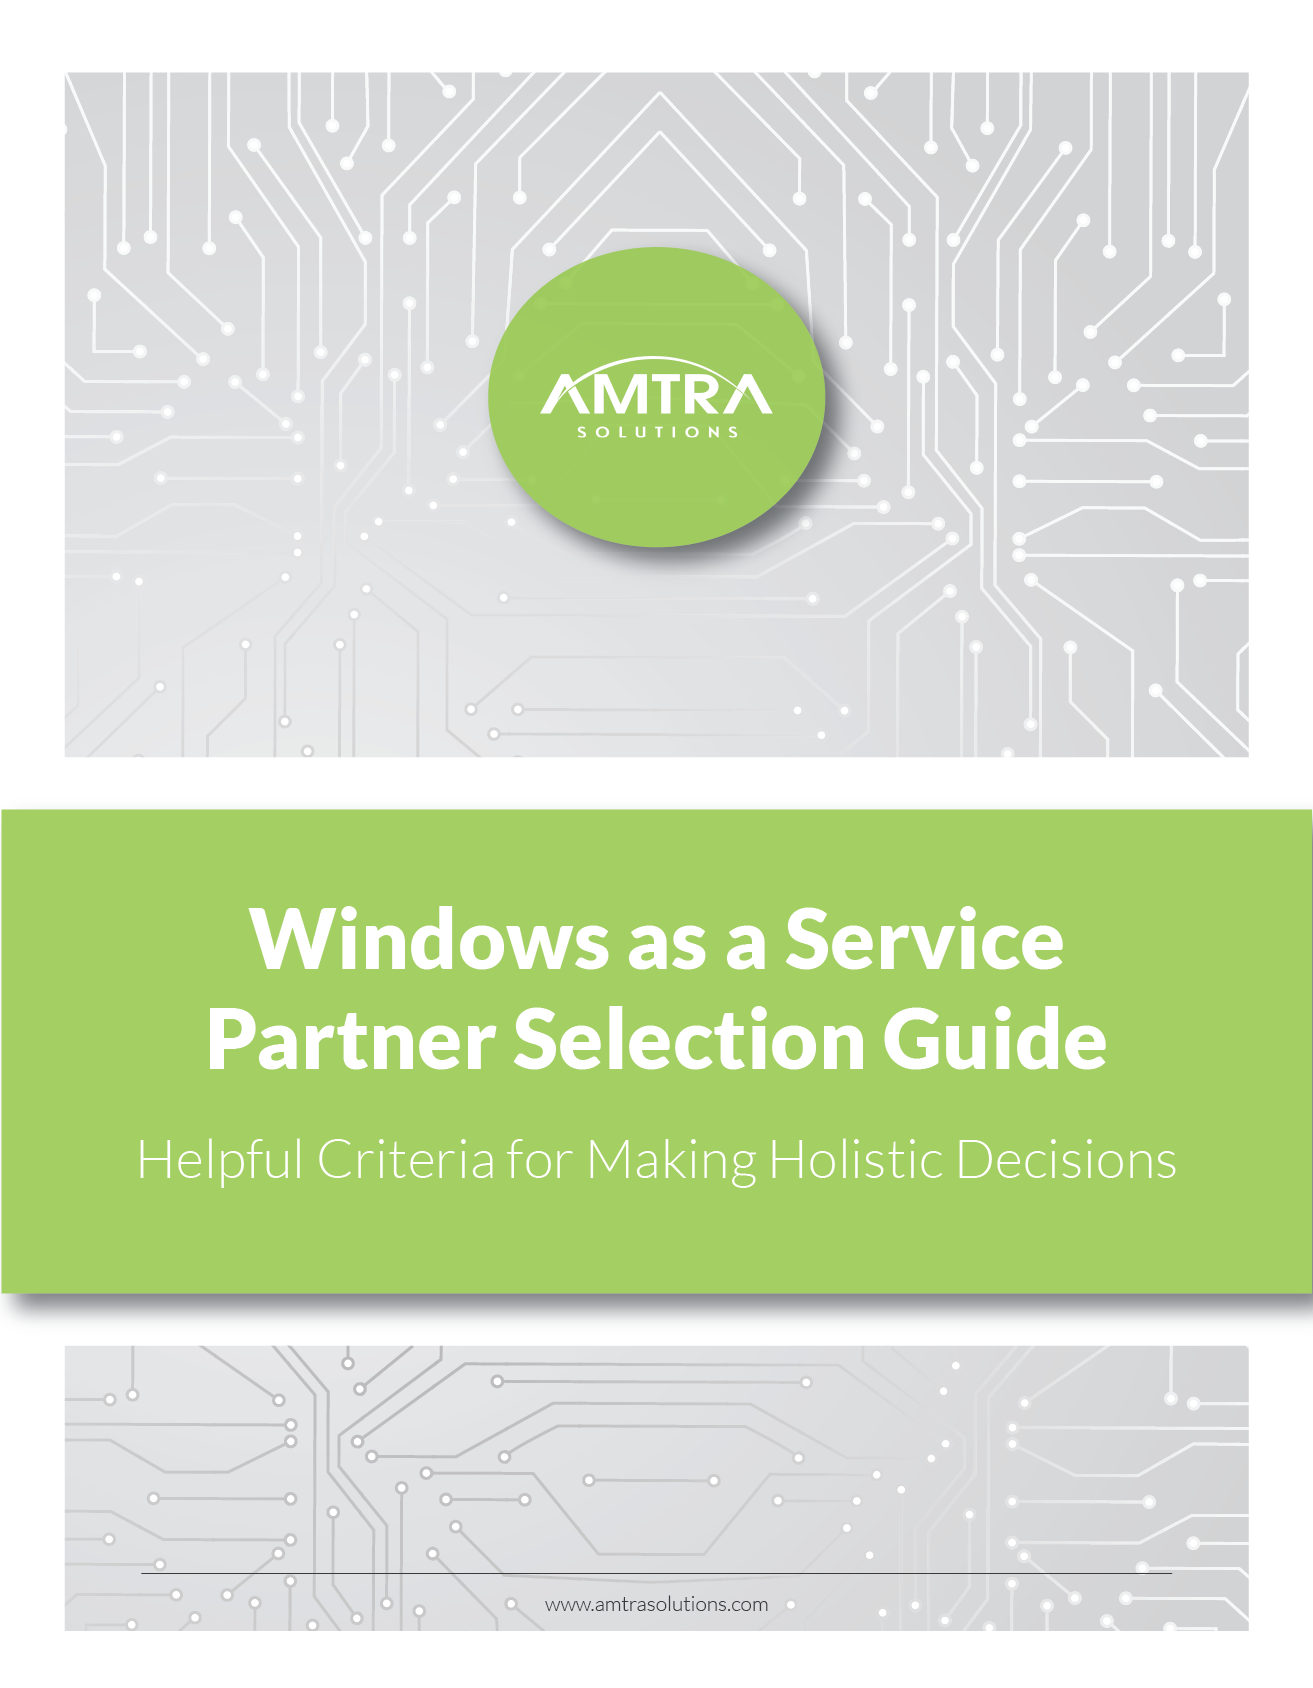 AMTRA Solutions_Windows as a Service_Partner Selection Guide_Cover-01